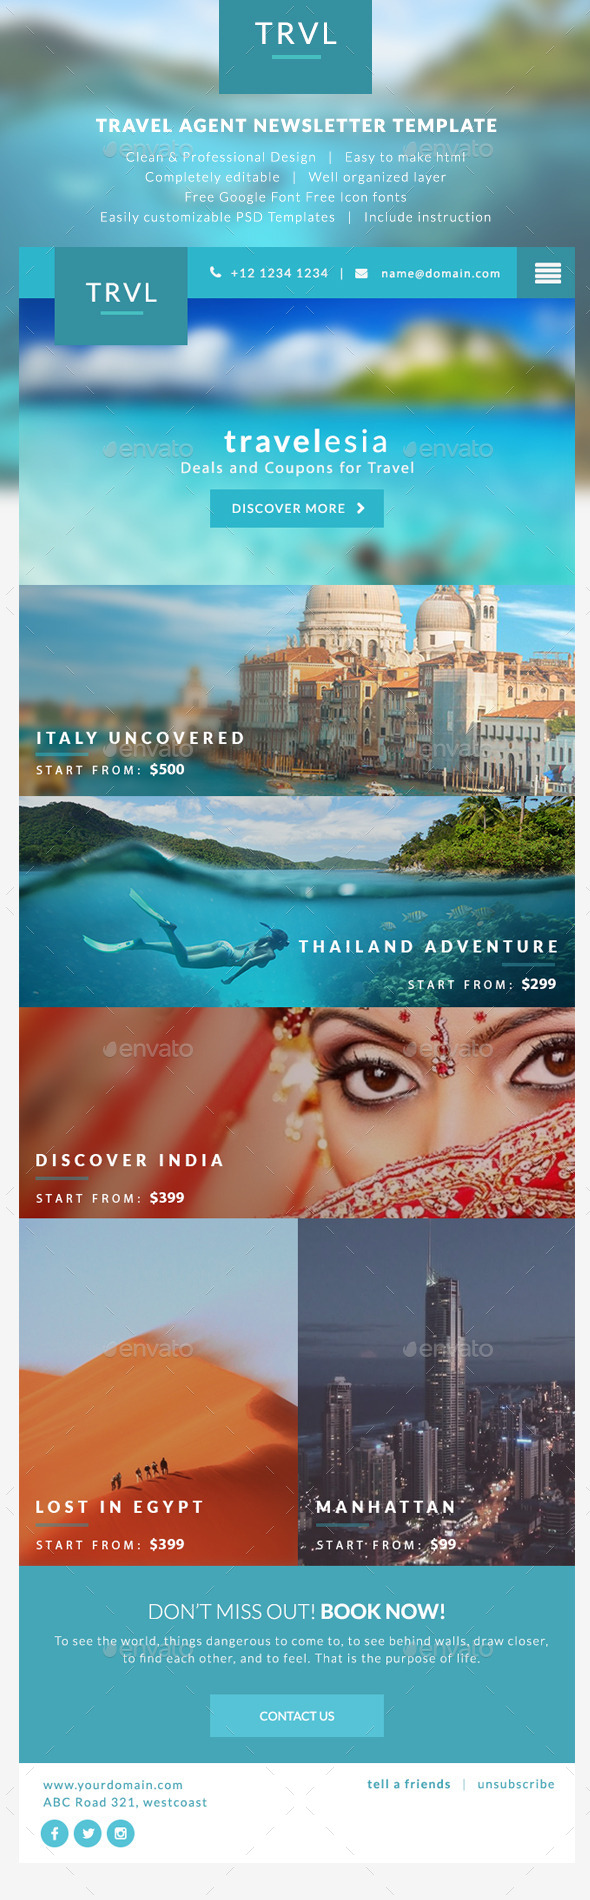 Travel Agent Newsletter Templates - Travelesia - E-newsletters Web Elements